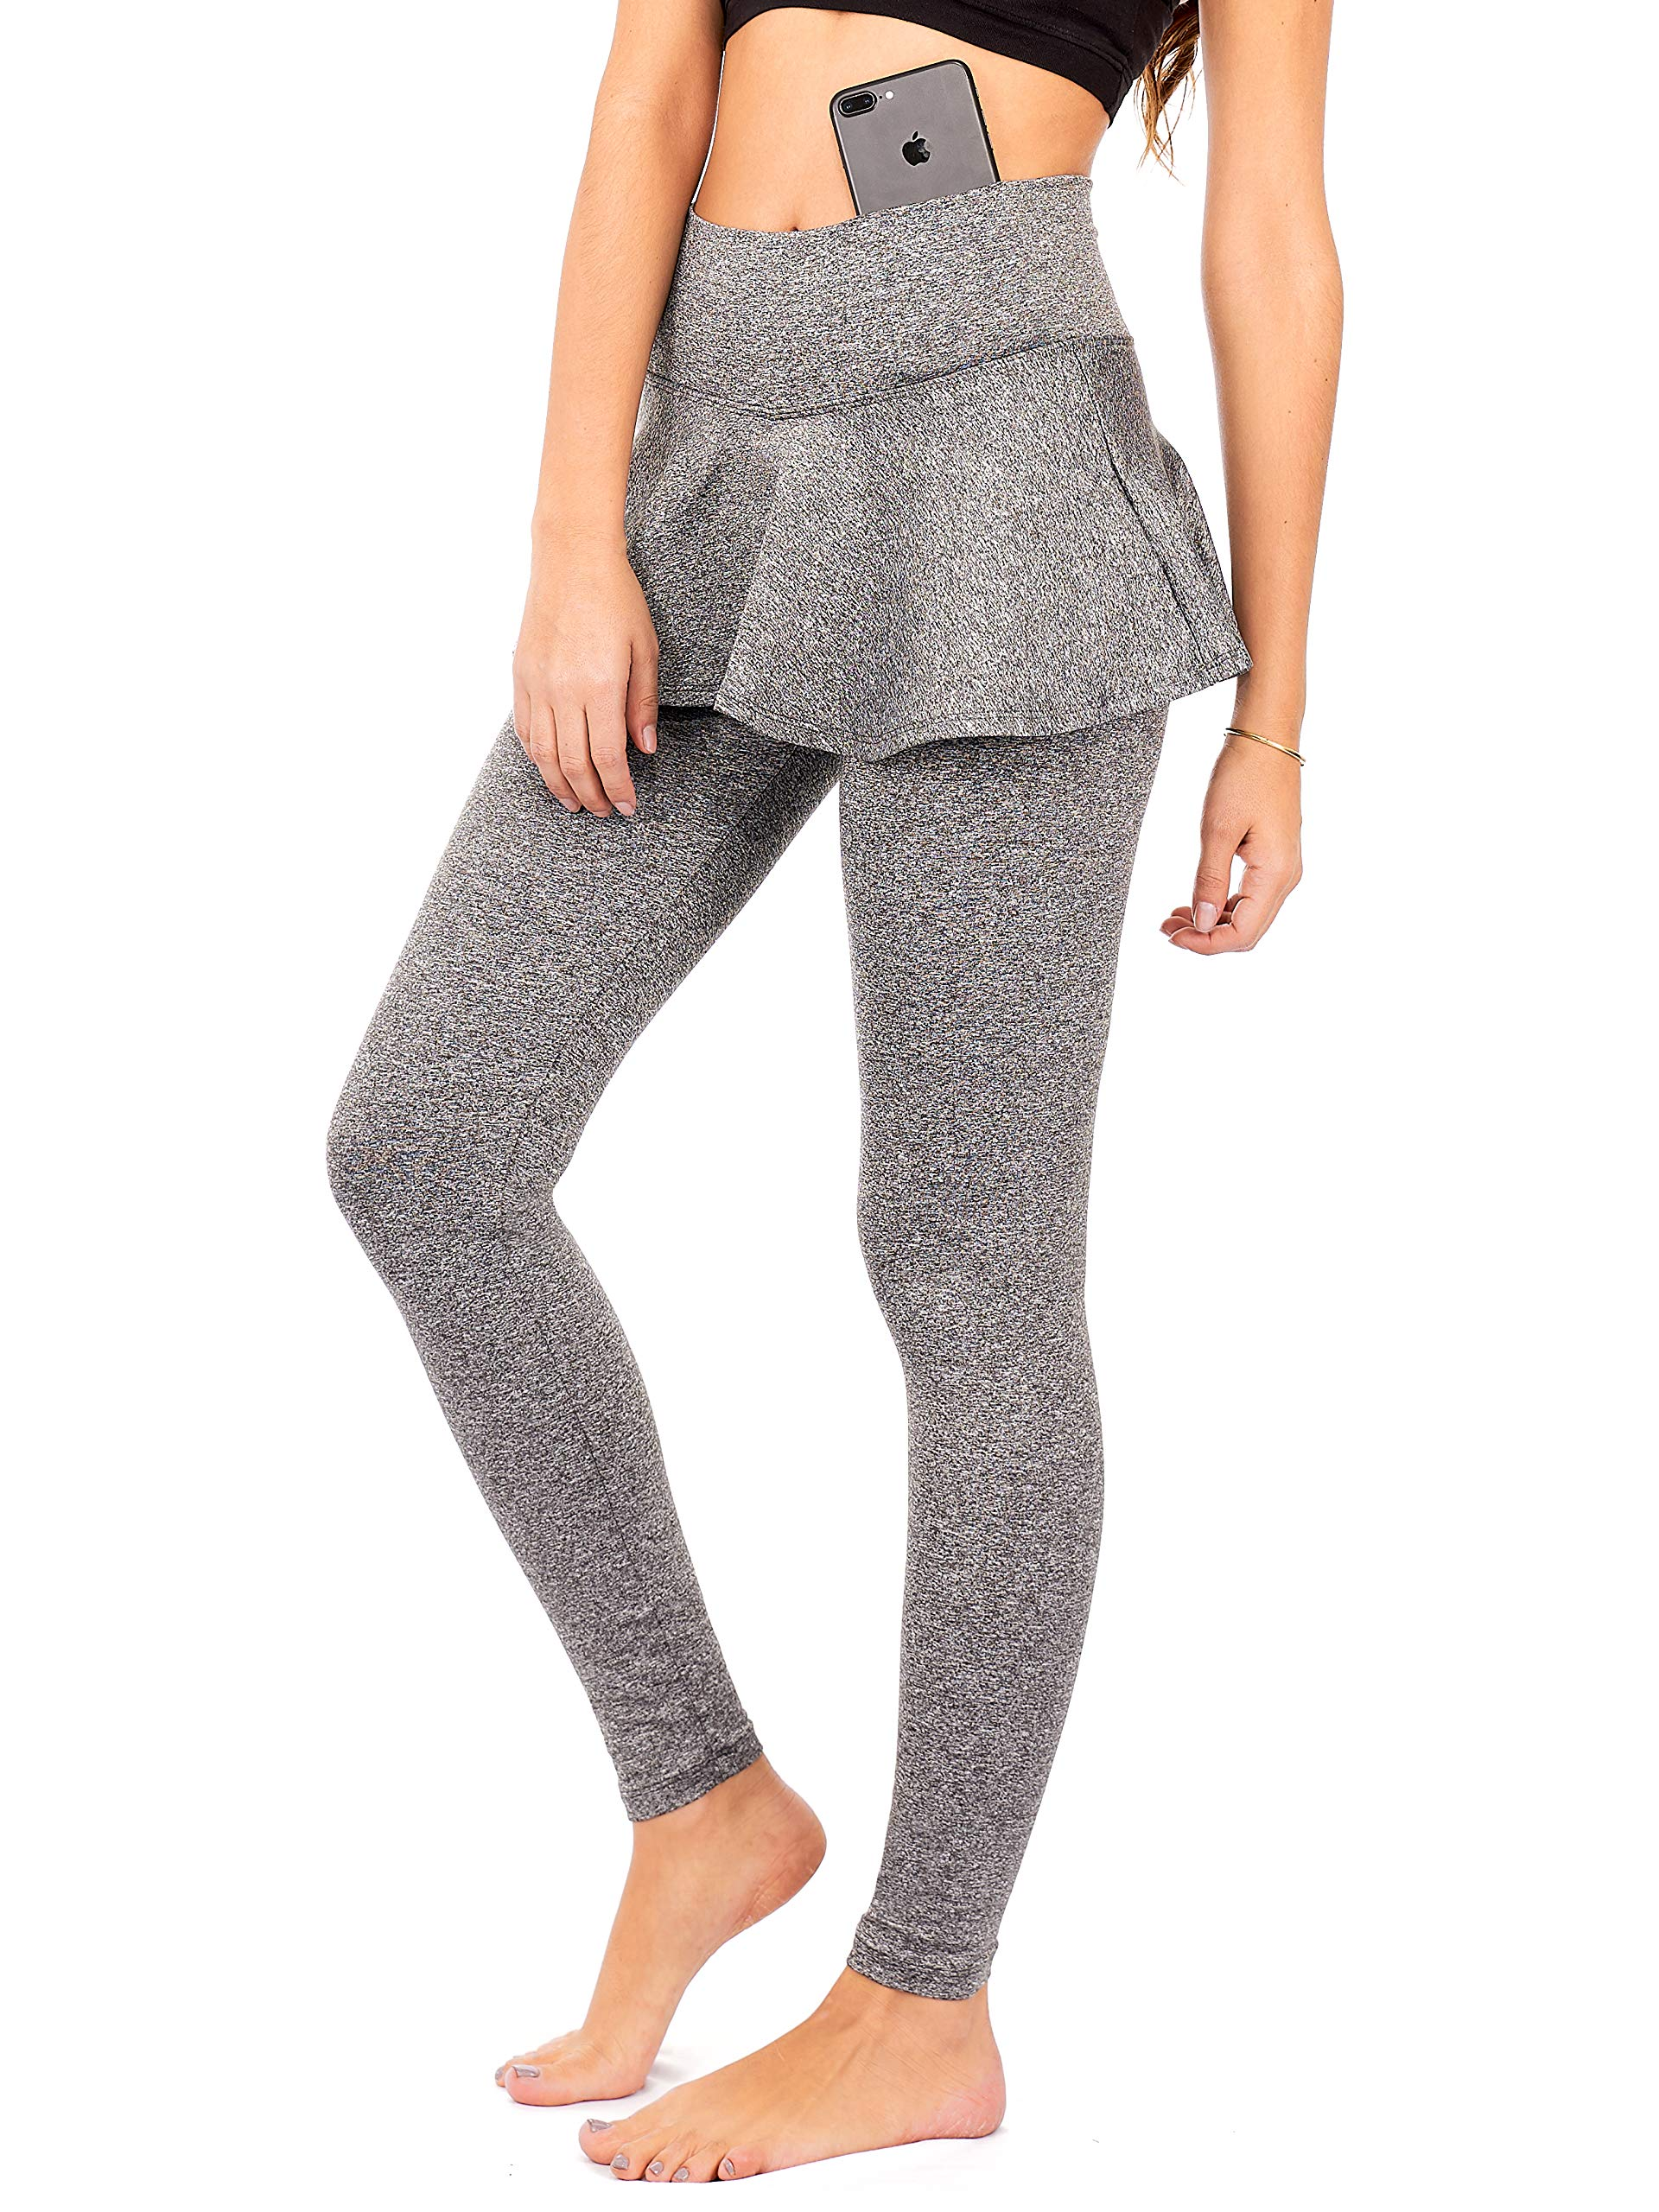 DEAR SPARKLE Skirted Leggings for Women | Yoga Tennis Golf Pants with Skirt Pockets + Plus Size (S9)